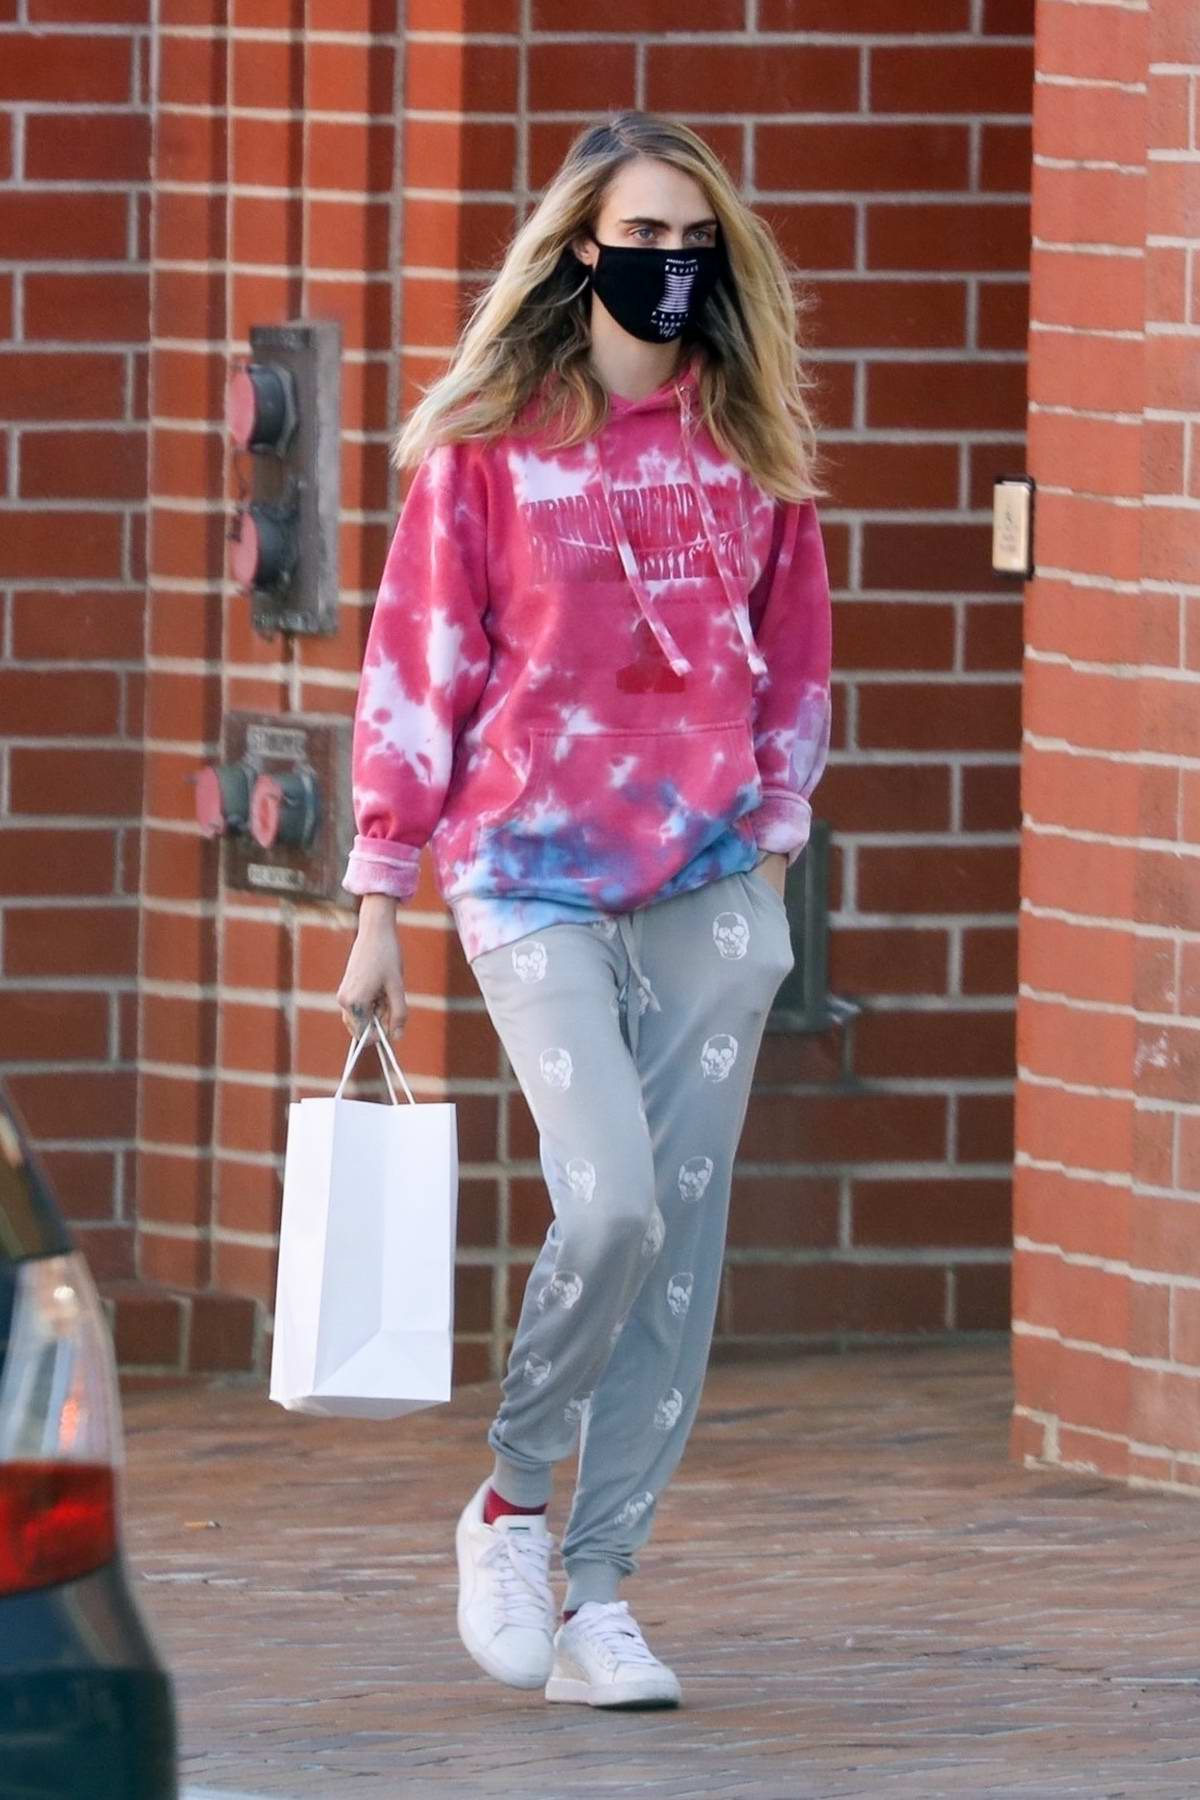 Cara Delevingne sports a pink tie-dye hoodie and grey sweatpants as she visits a medical building in Los Angeles